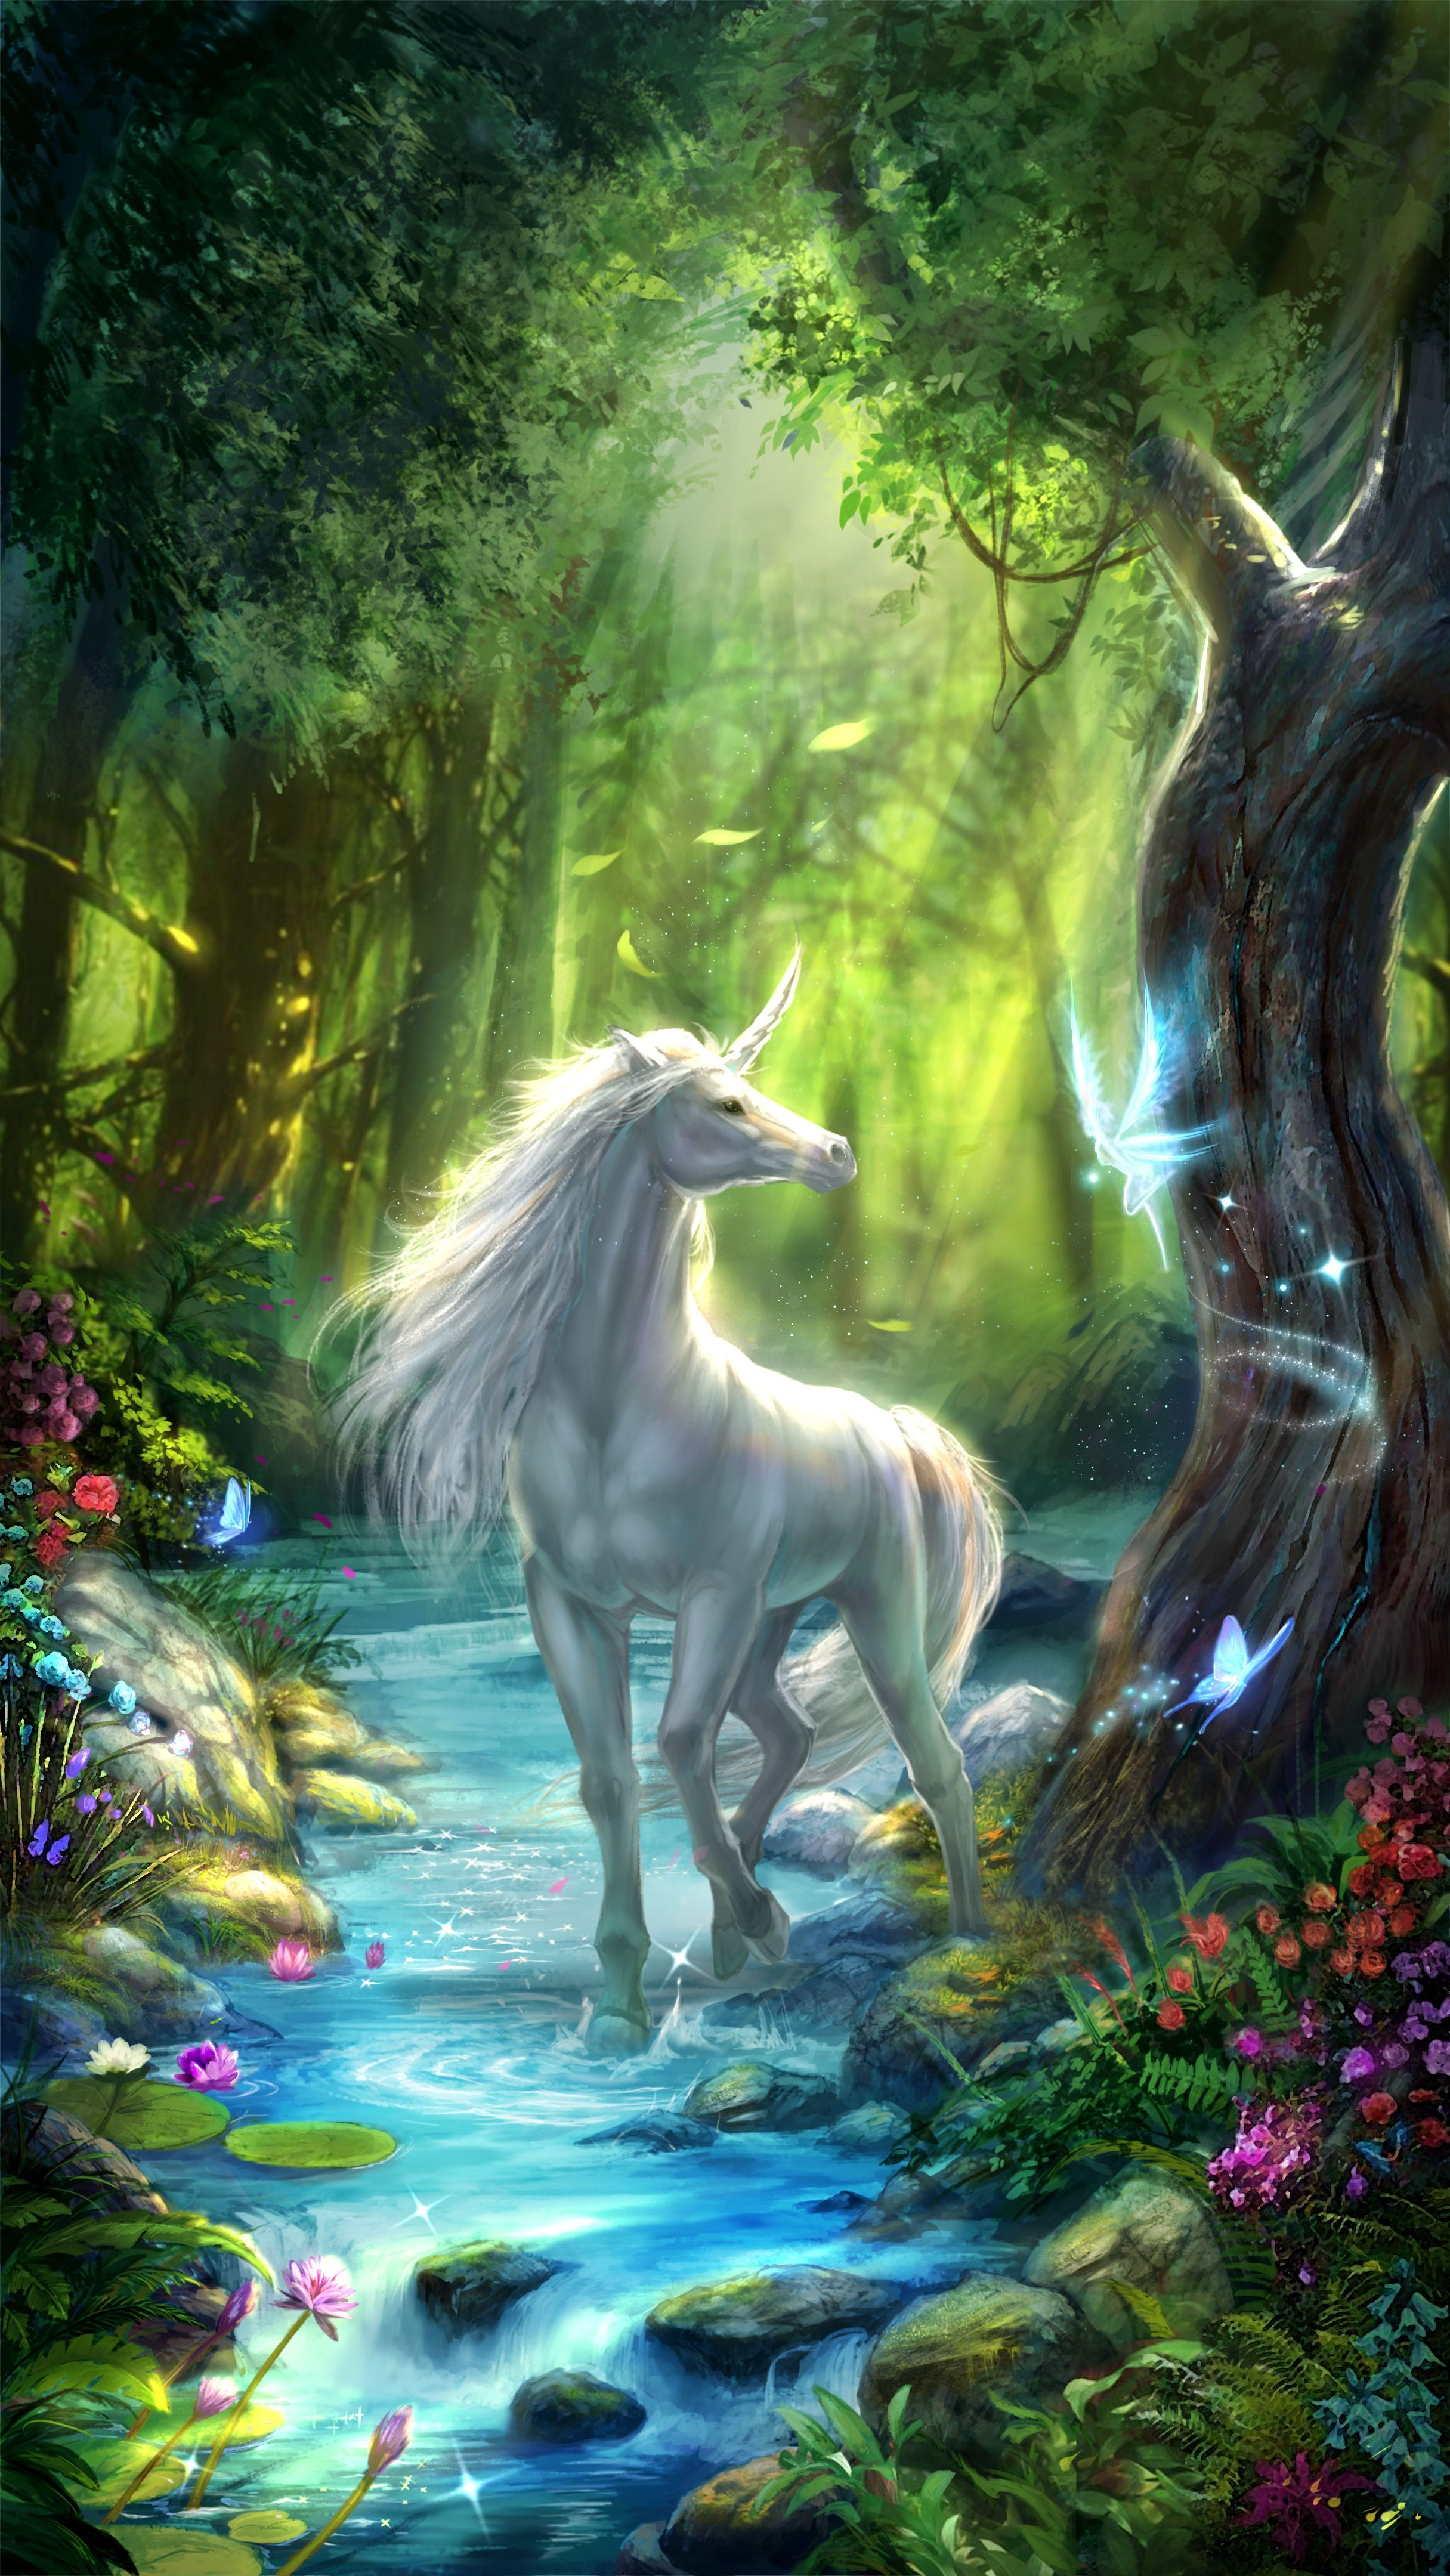 2431x4319 Unicorn live wallpaper, white unicorn in the fairy forest, very ...